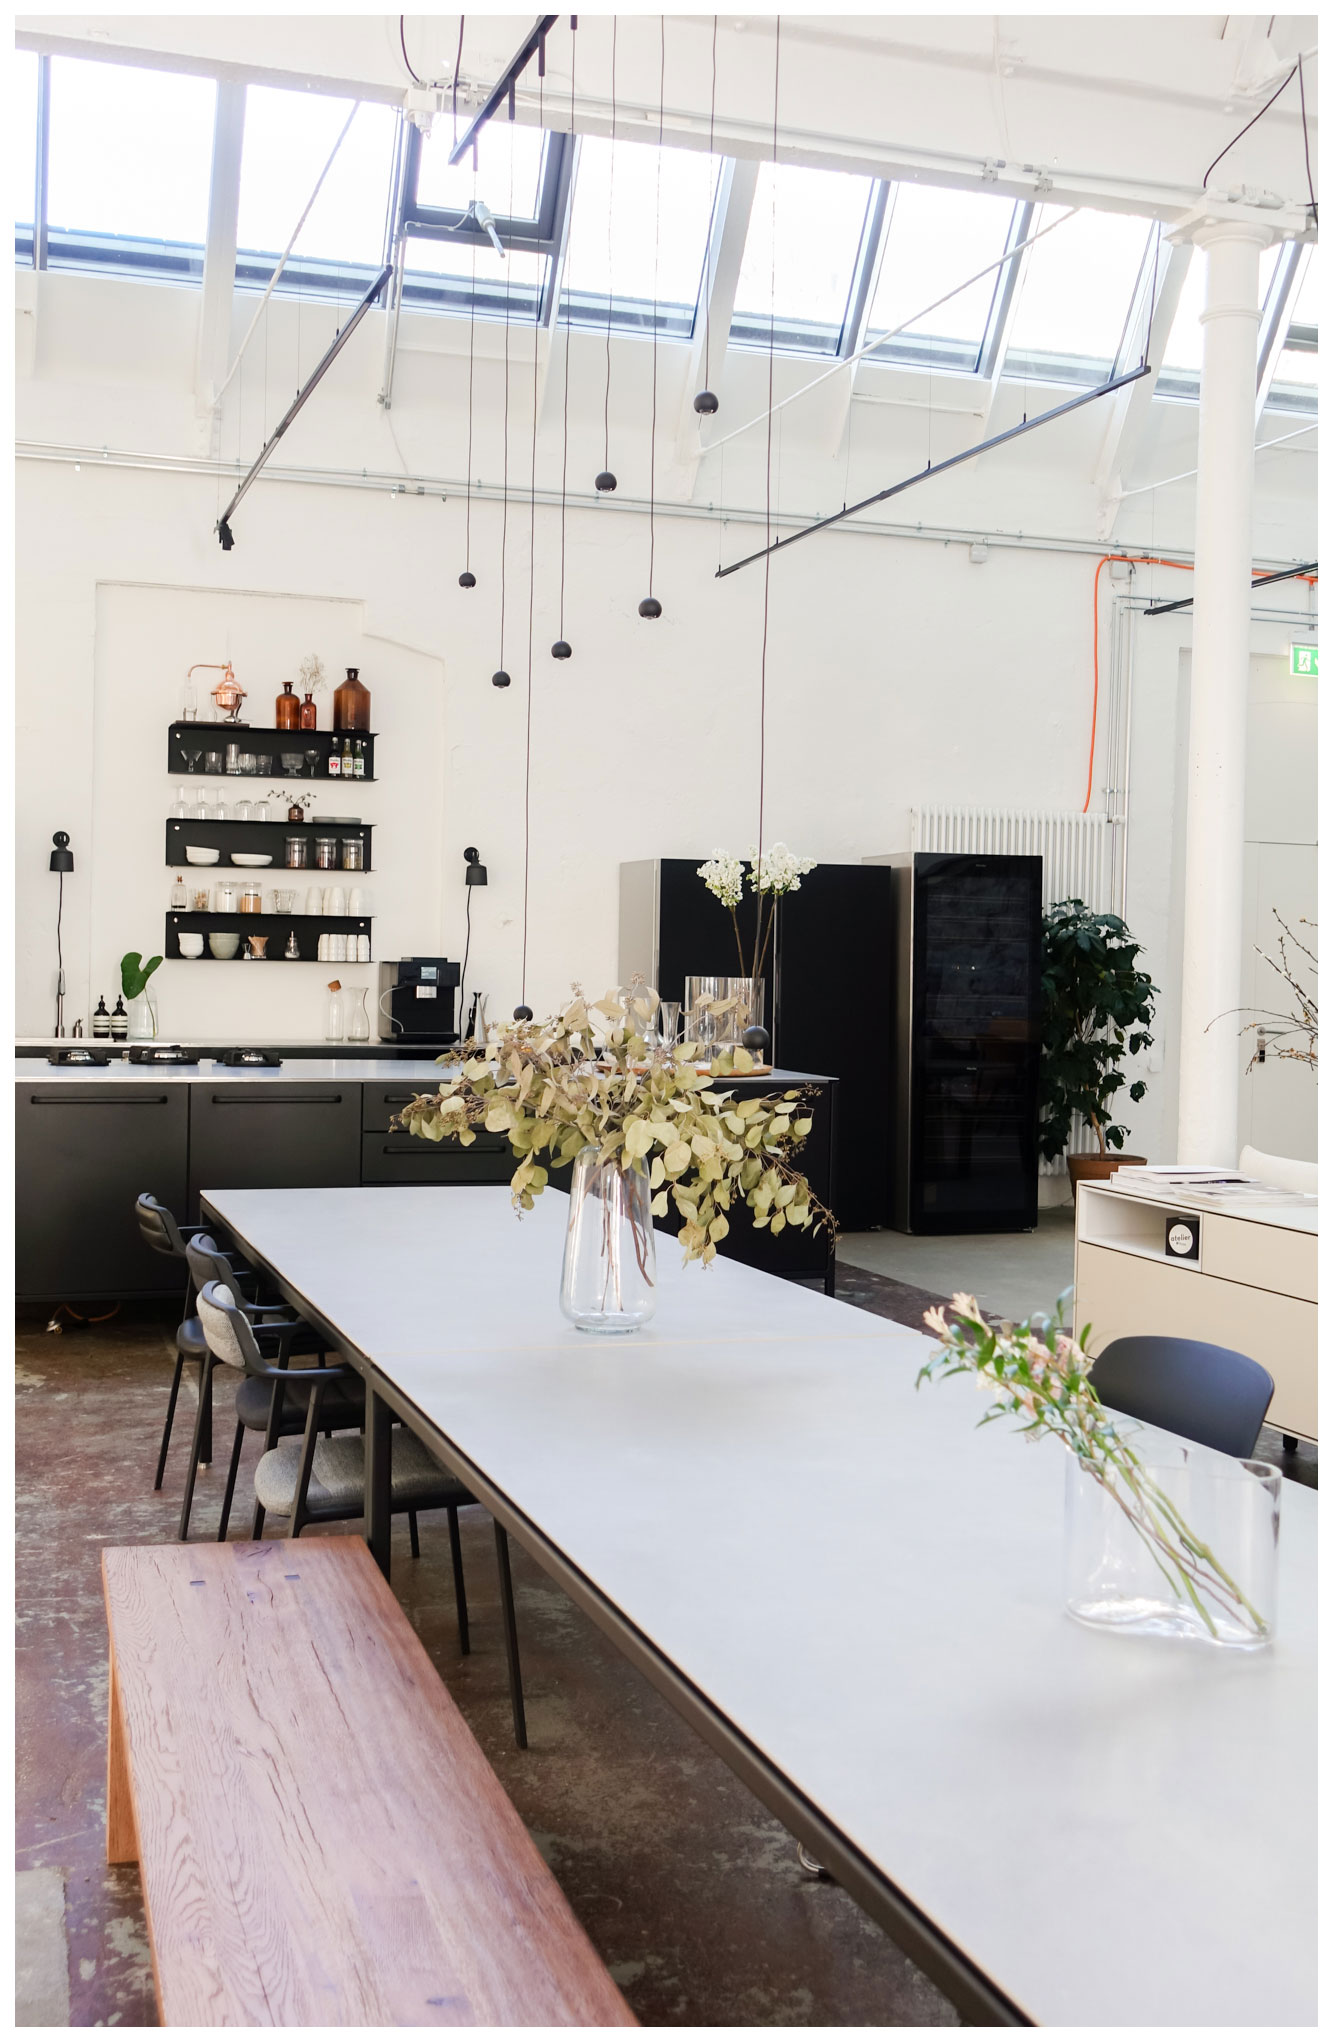 Coworking Office in Zurich with Vipp kitchen and long dining table